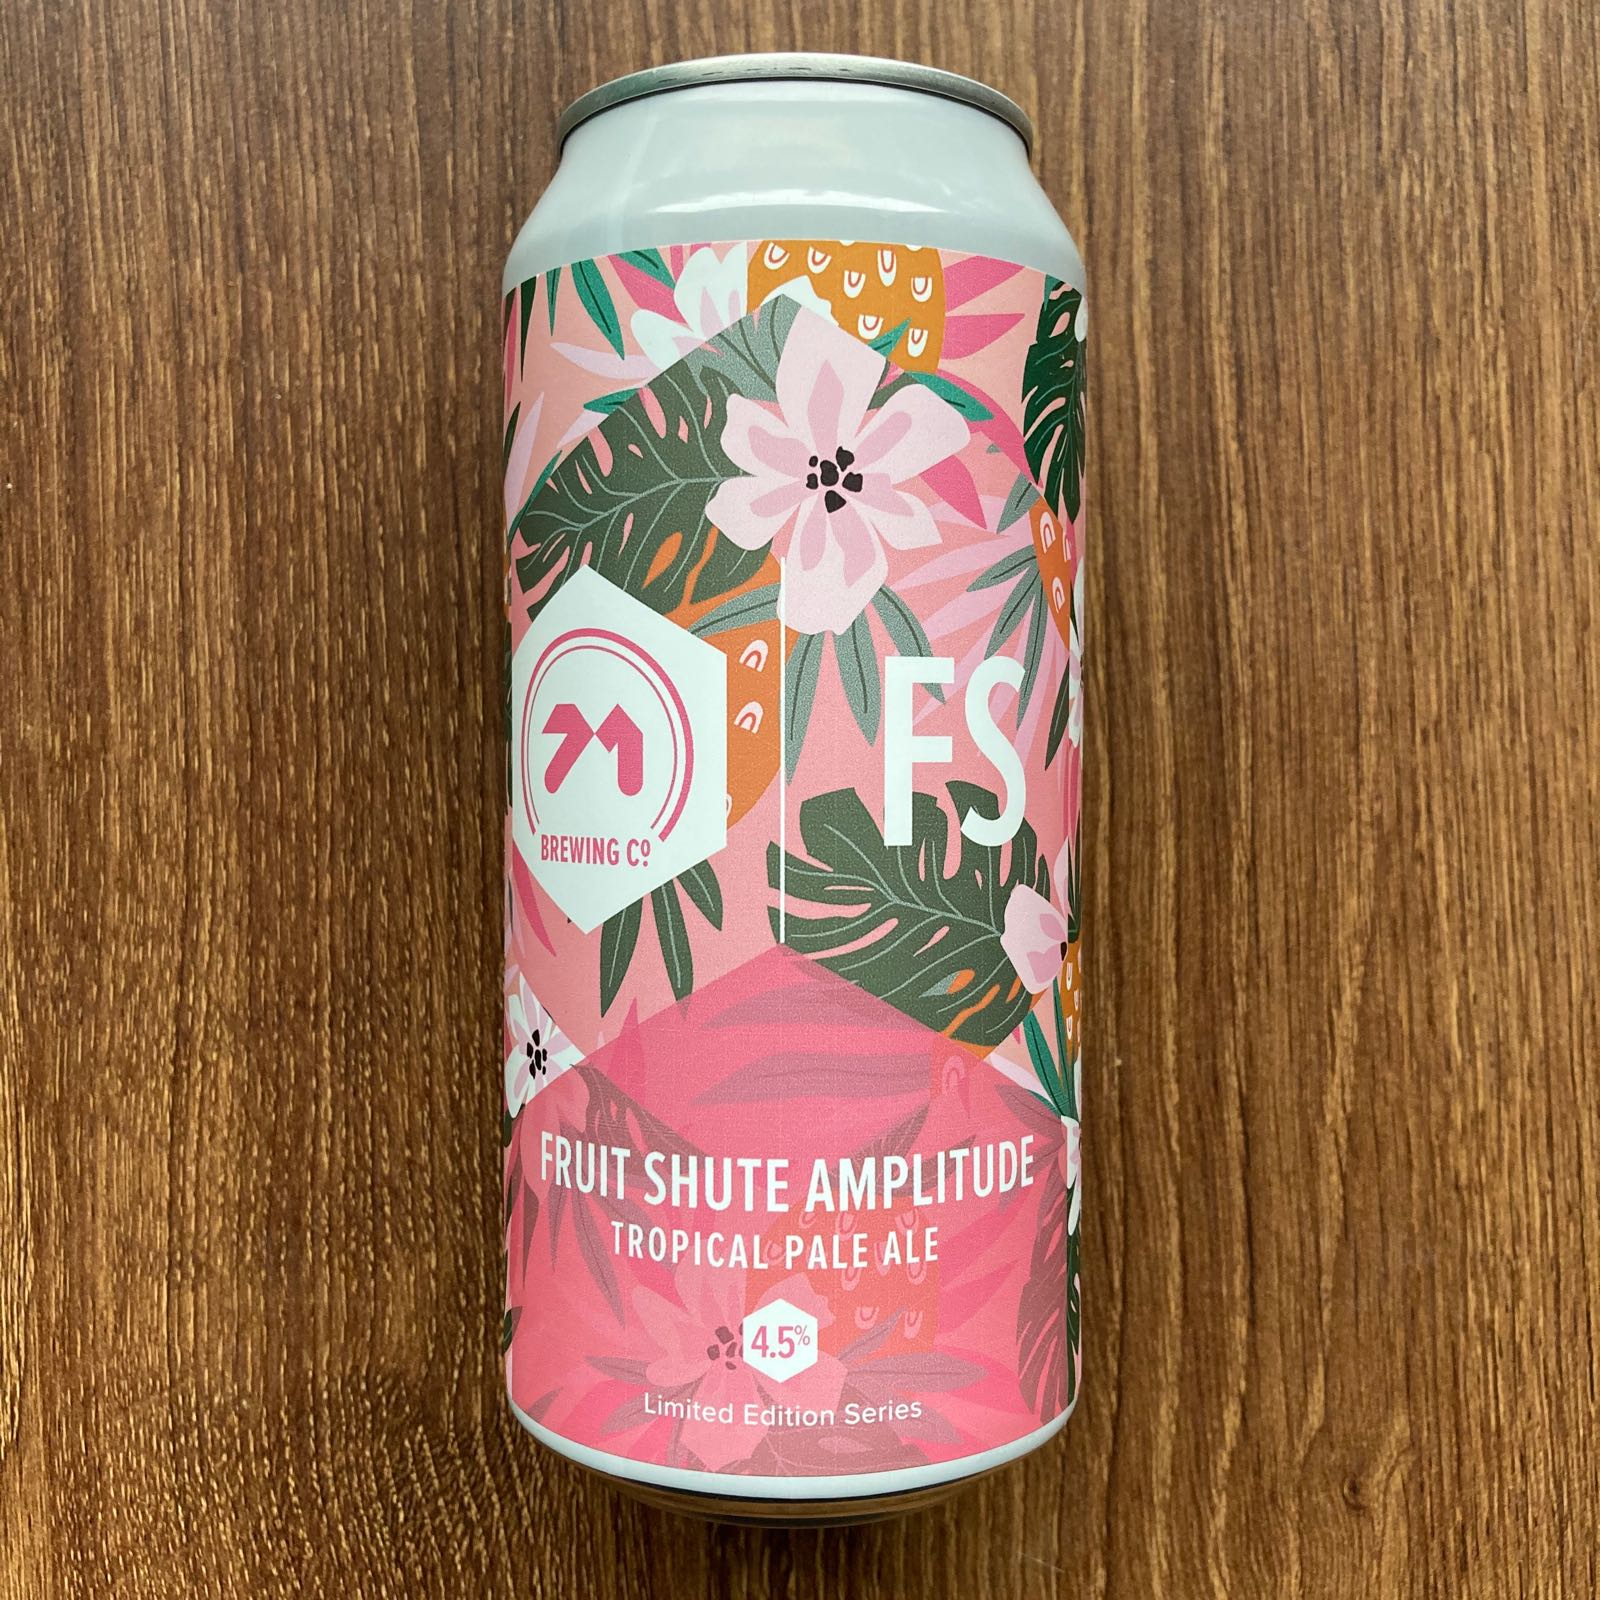 71 Brewing - Fruit Shute Amplitude